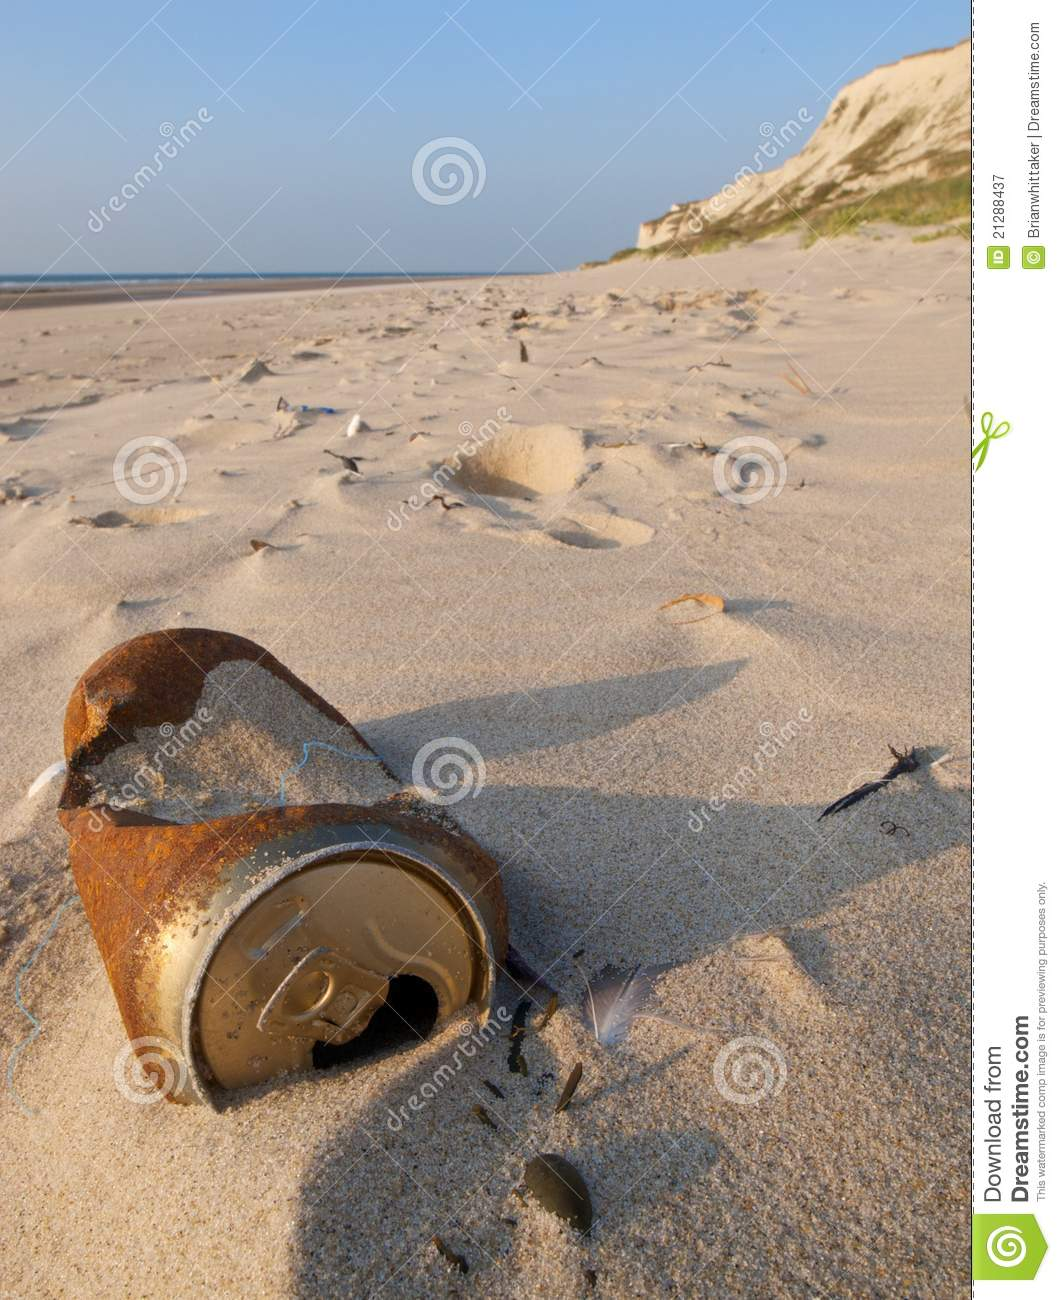 Images Stock Rubbish Beach Litter Stock Image Image Of Beach Environment